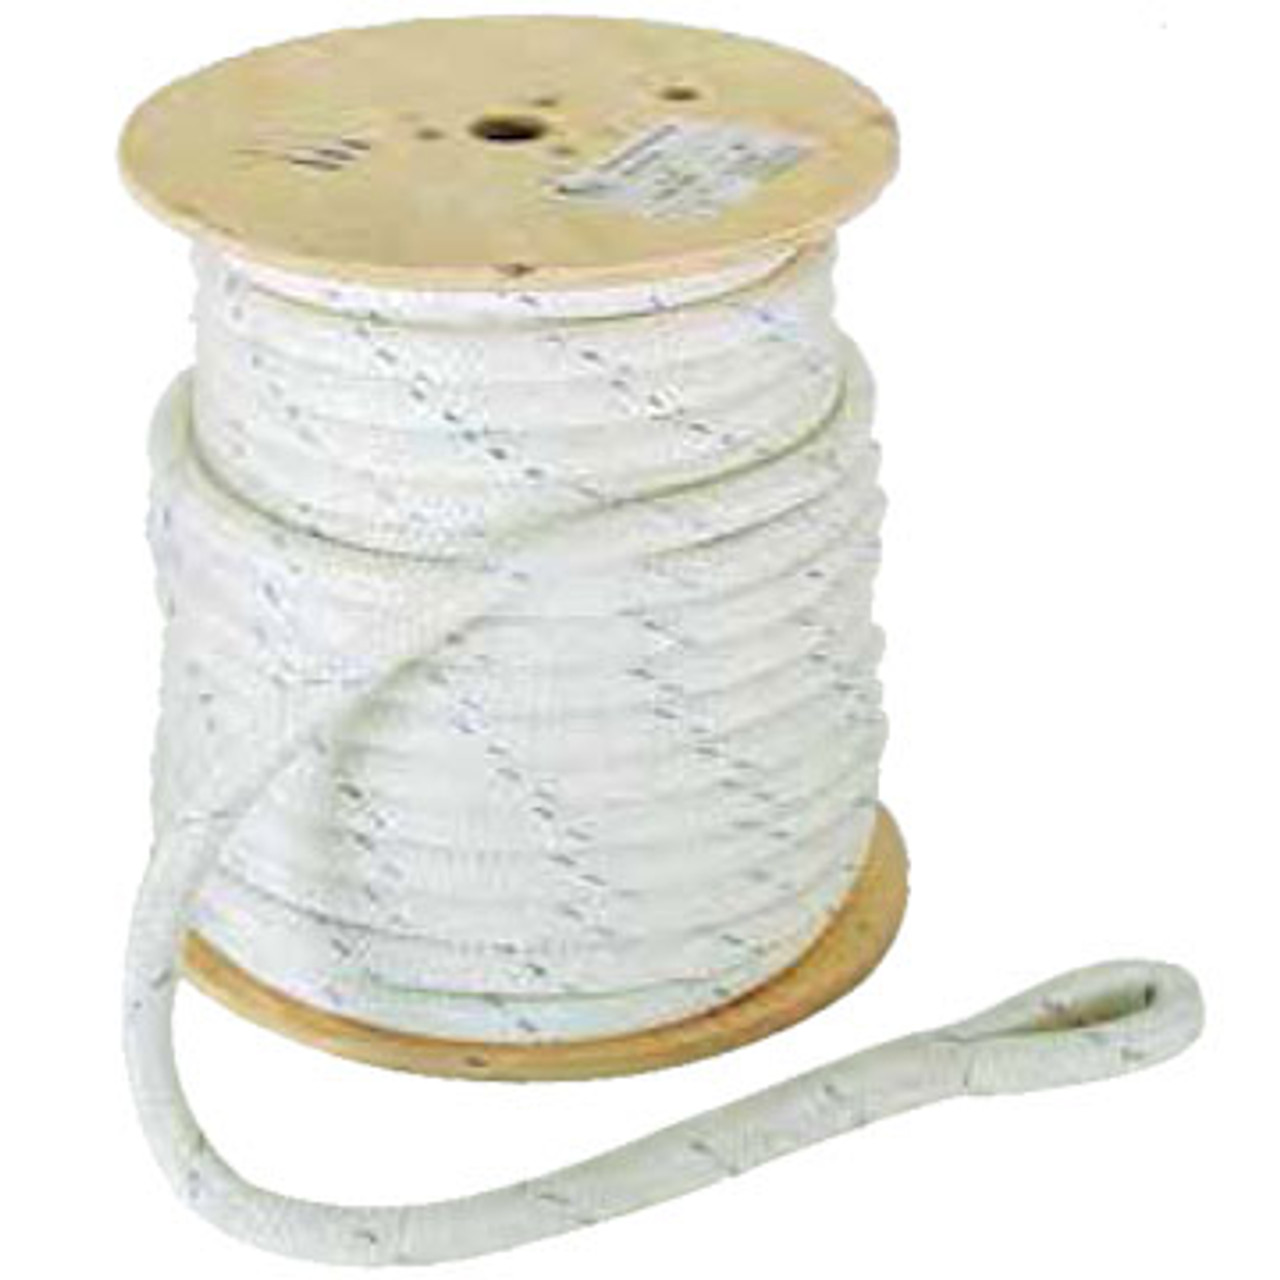 Condux Double-Braided Cable Pulling Rope is a premium quality rope recommended for cable pulling. Double-braided construction offers high working loads and tensile strength without kinking. Other sizes available.